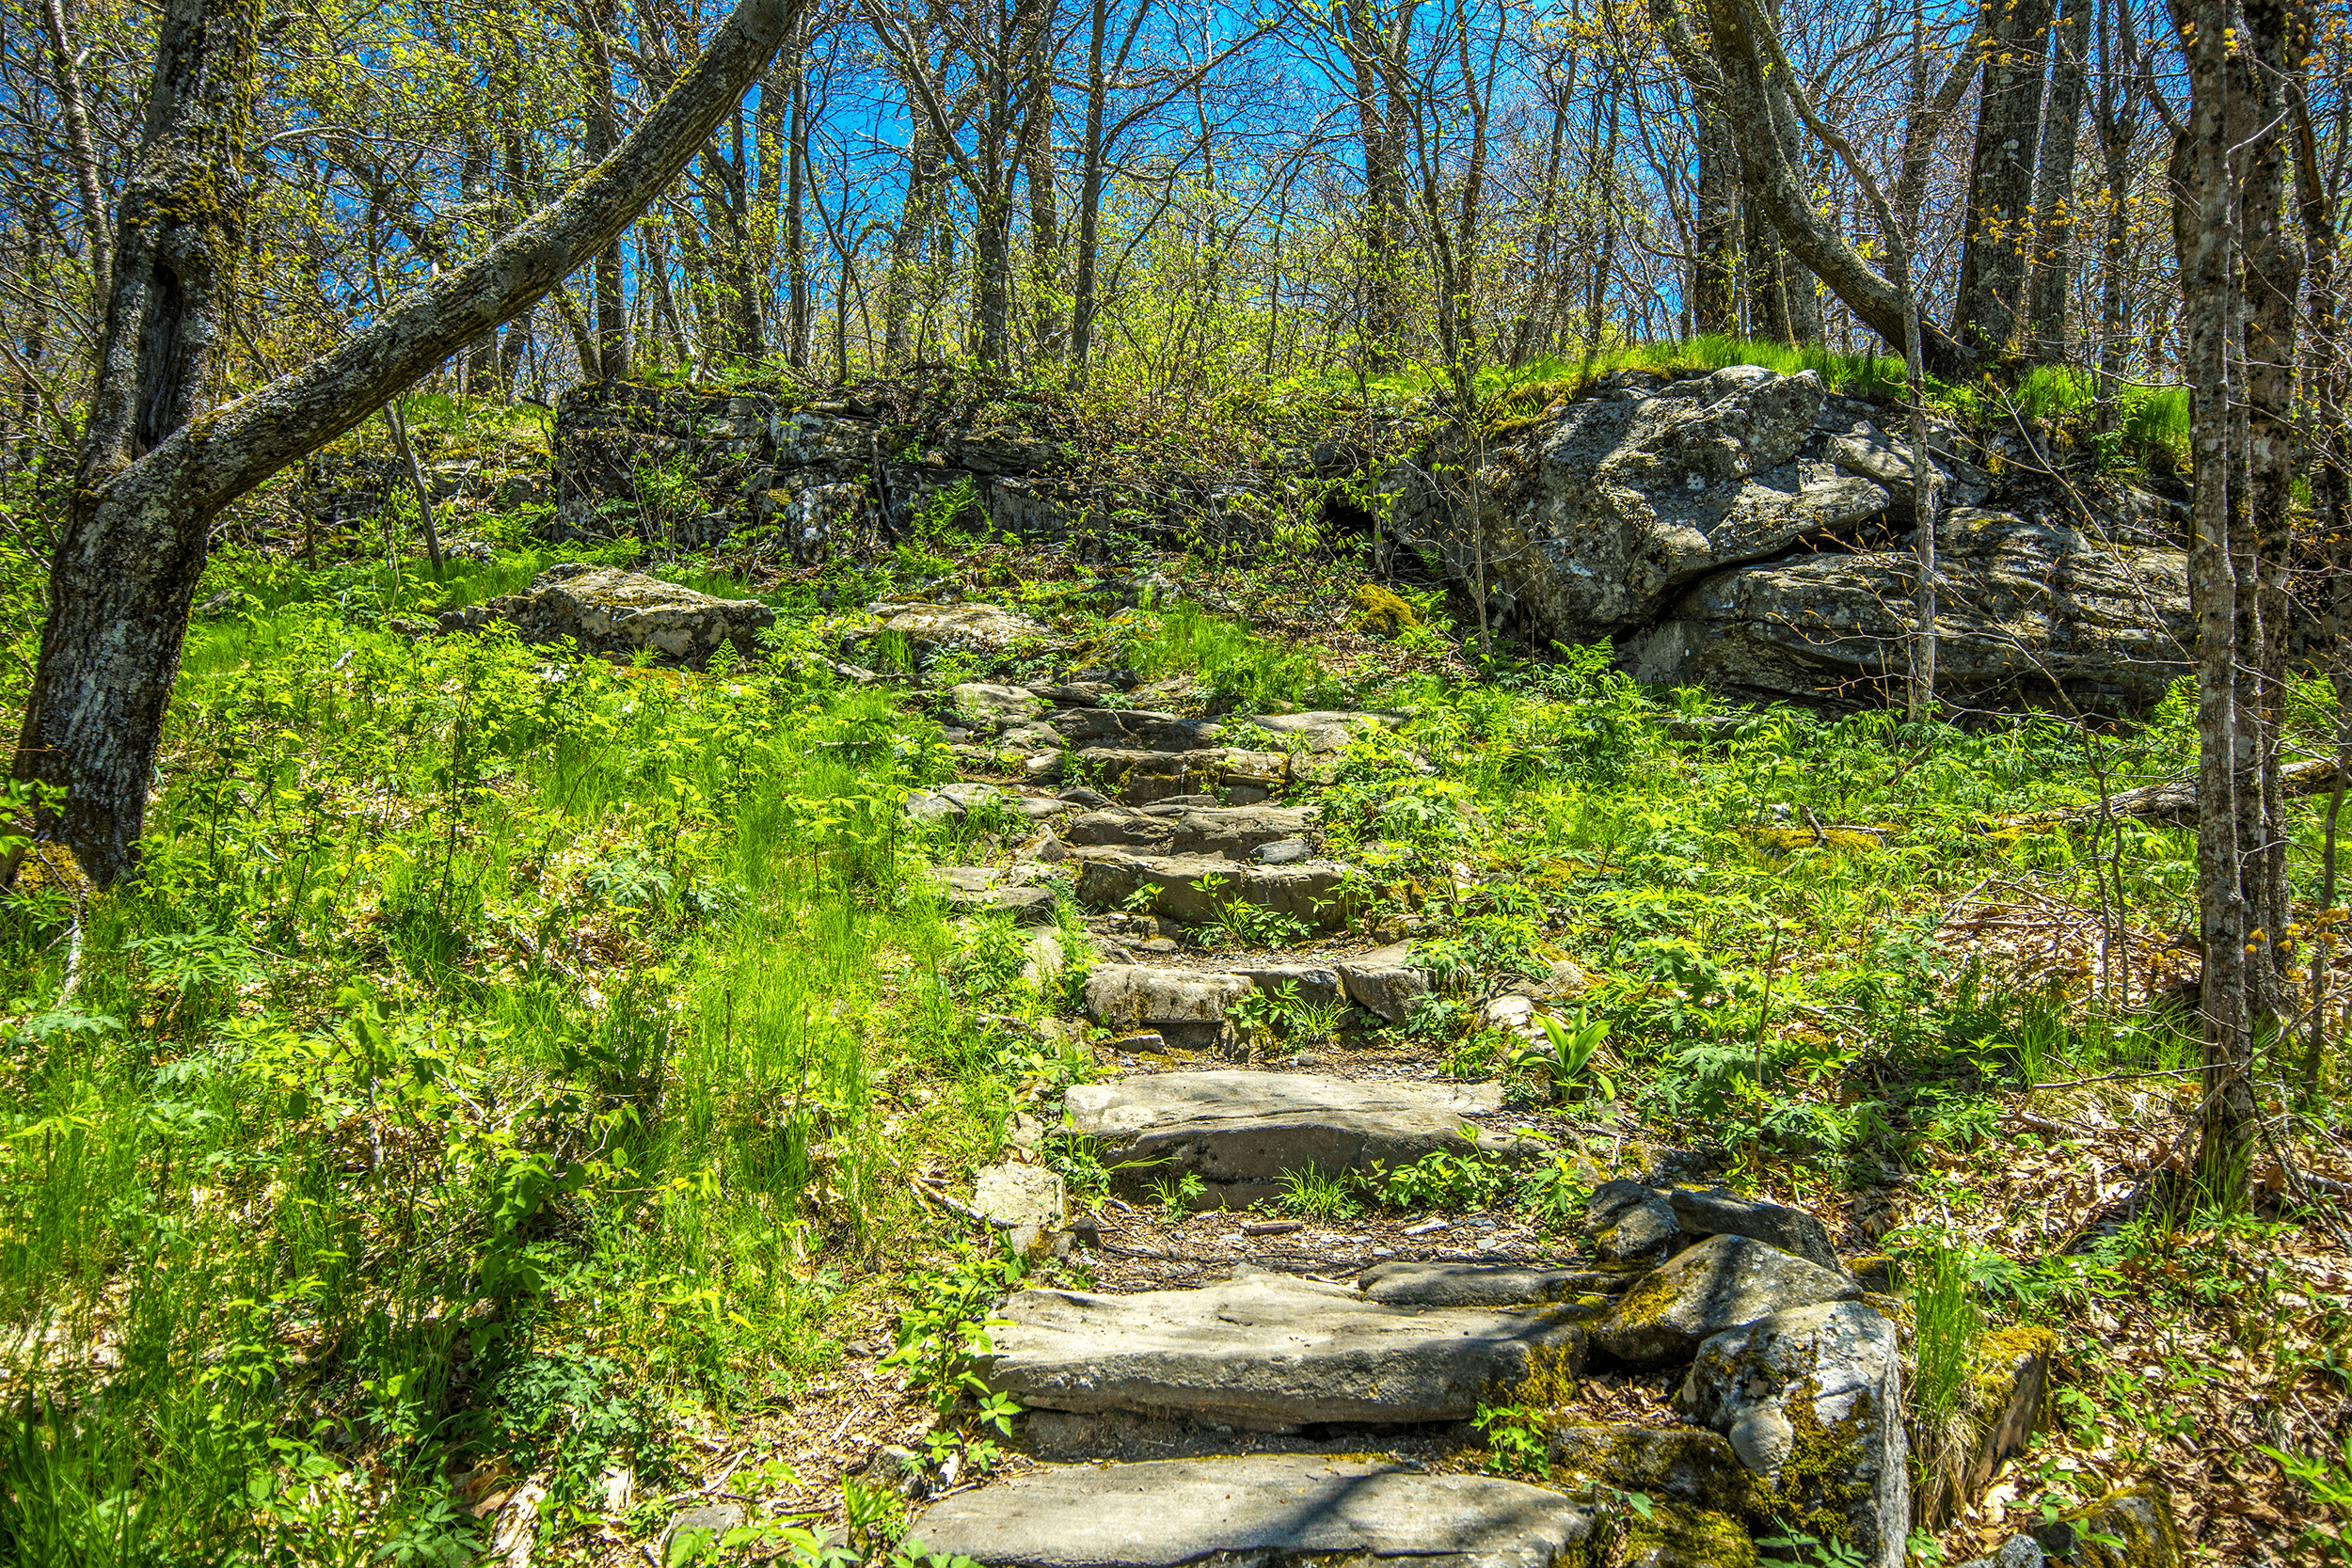 Some parts of the path have a stone staircase built into the trail, especially during the first half of the ascent. Did you know that a large number of volunteers helped to construct the trails in  Elk Knob State Park ?